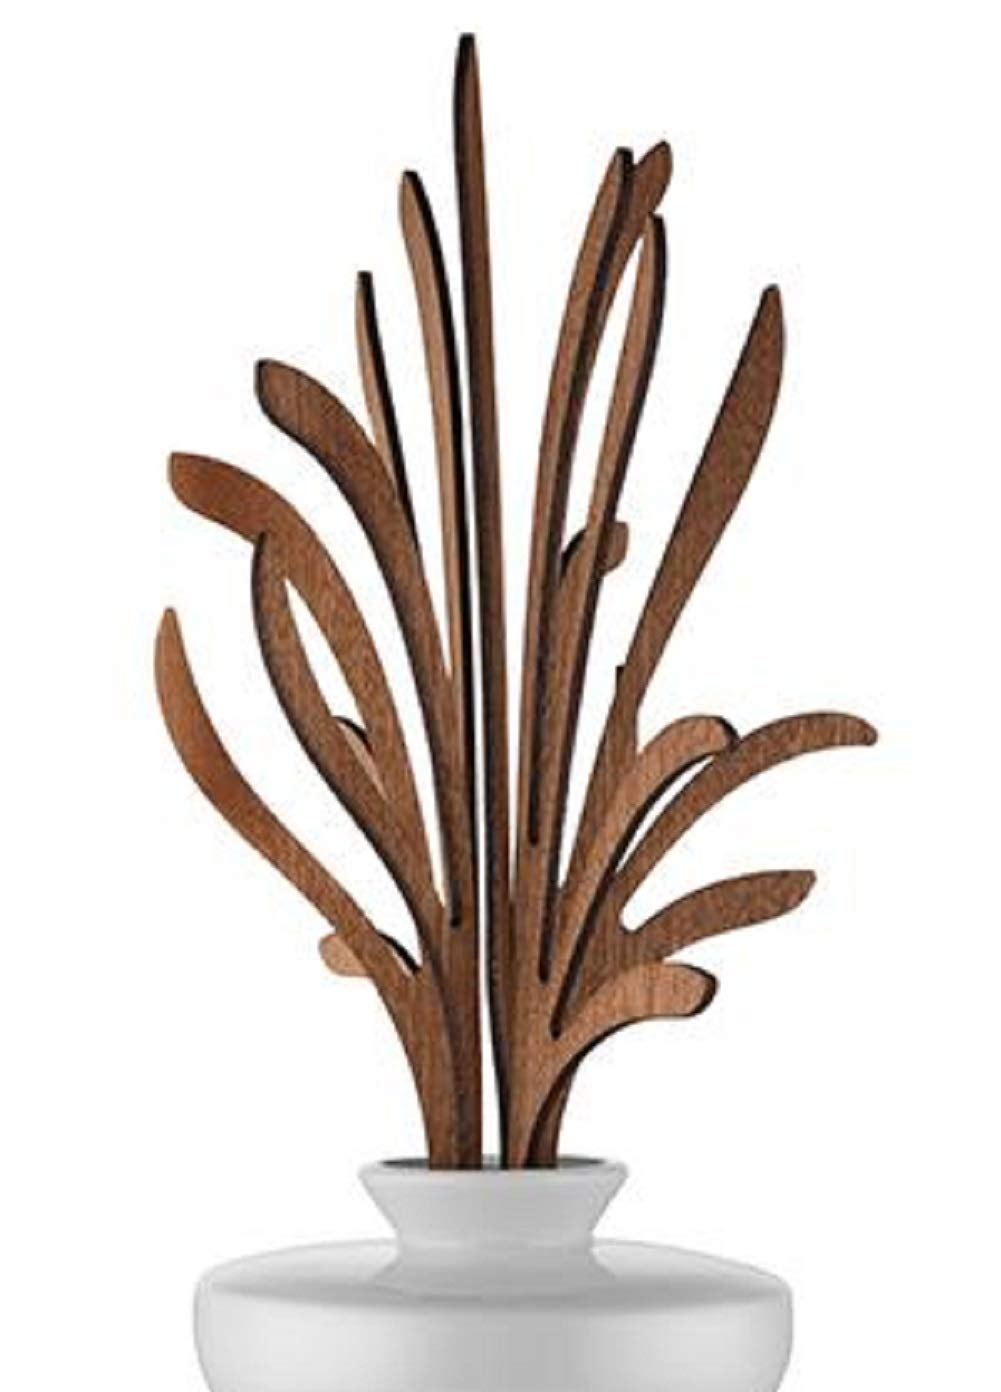 Alessi The Five Seasons Grrr Replacement Diffuser Leaves, Mahogany Wood, by Marcel Wanders by Alessi (Image #1)